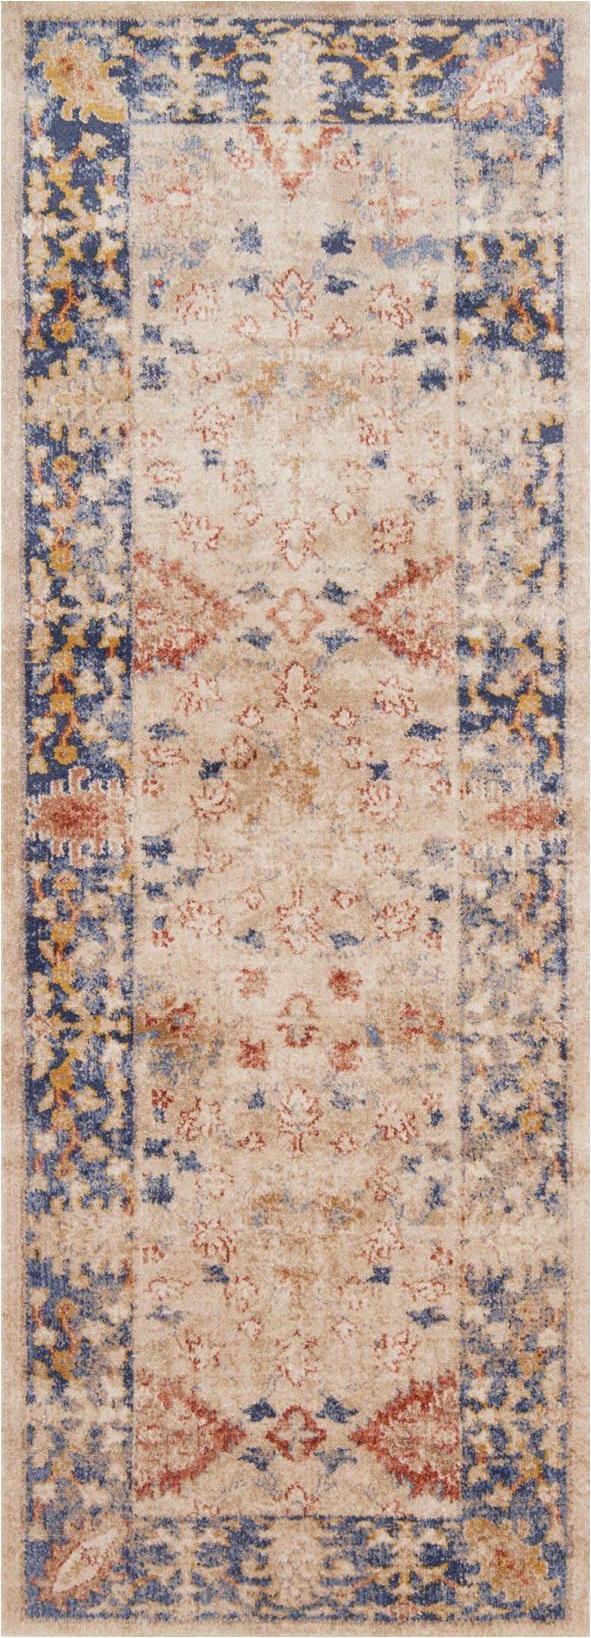 Trinity TY 08 Sand Blue Area Rug Magnolia Home by Joanna Gaines p